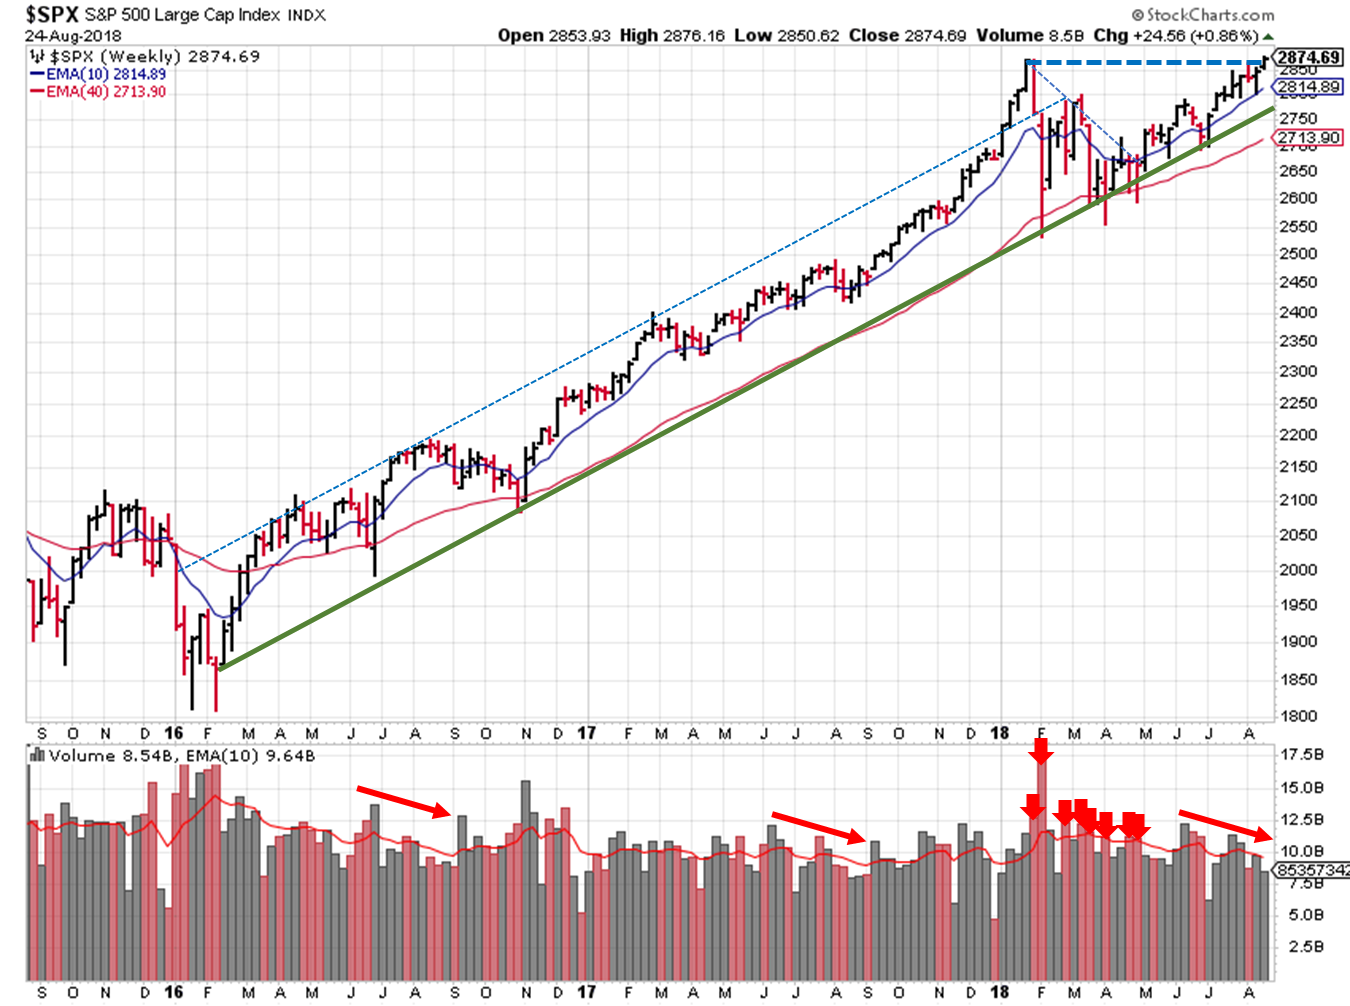 2018-08-26 - $SPX Technical Analysis - Weekly